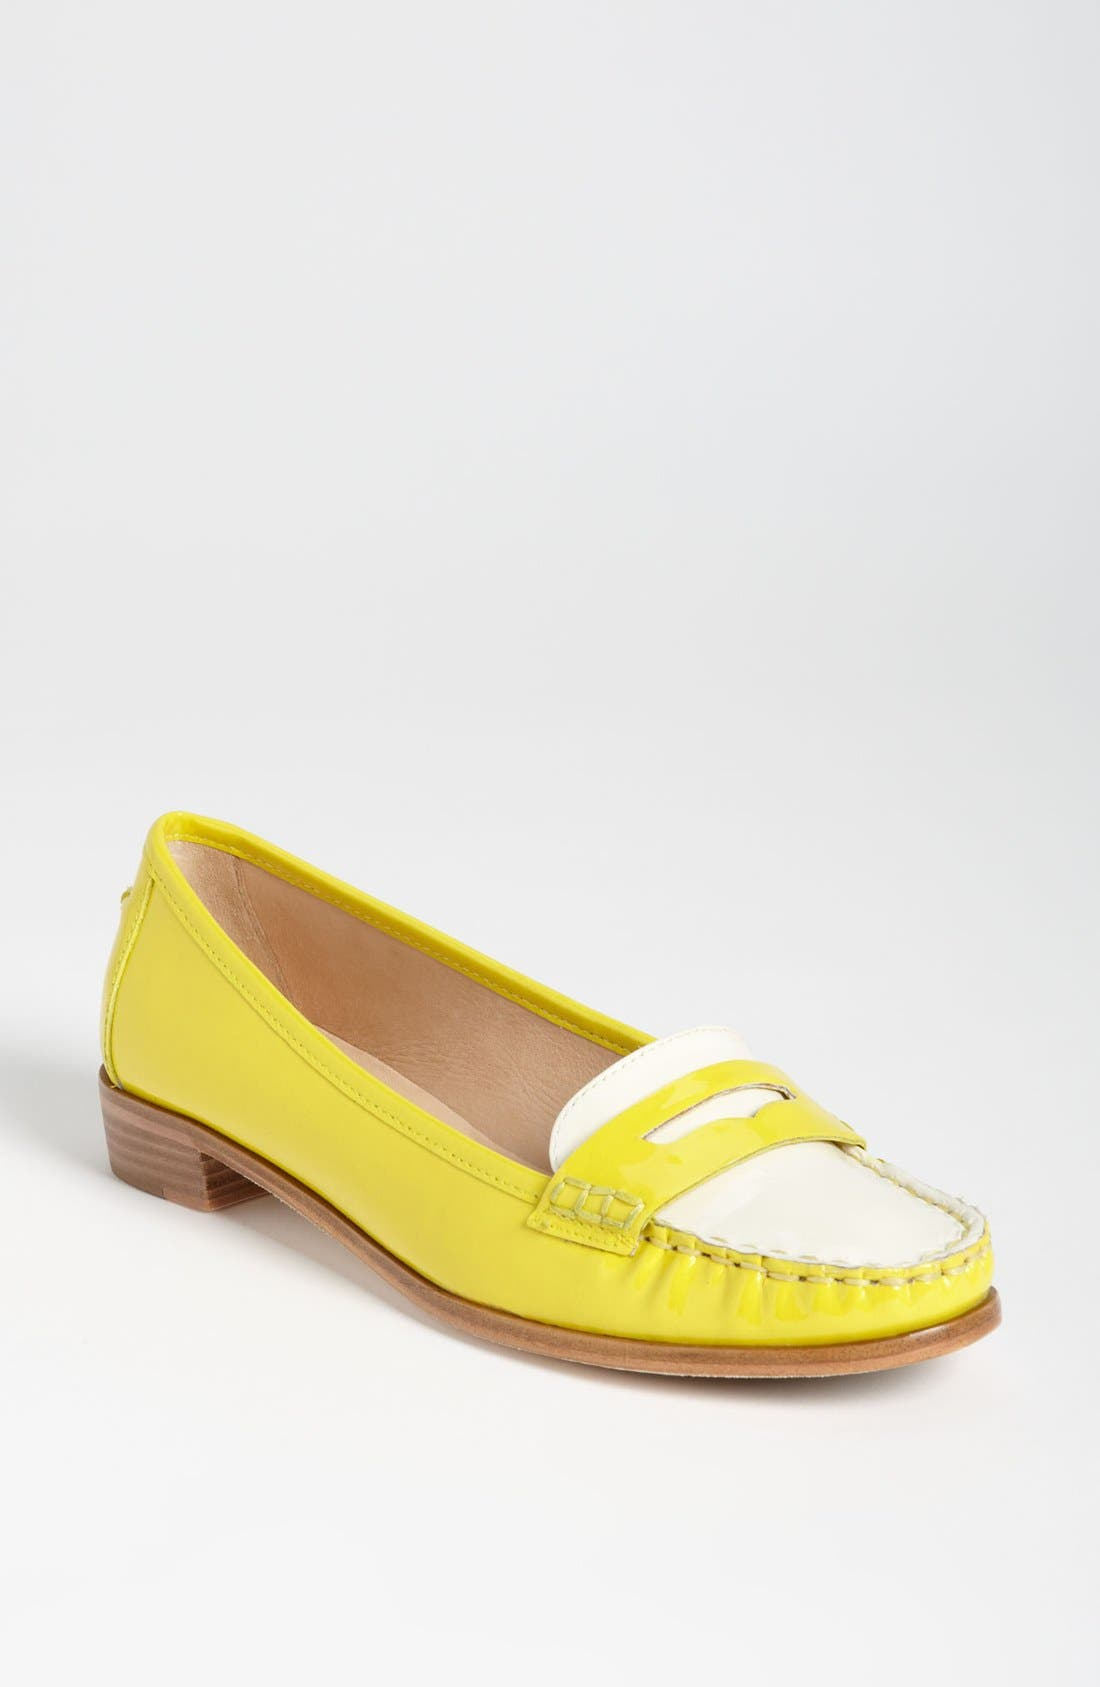 Alternate Image 1 Selected - kate spade new york 'cody' loafer